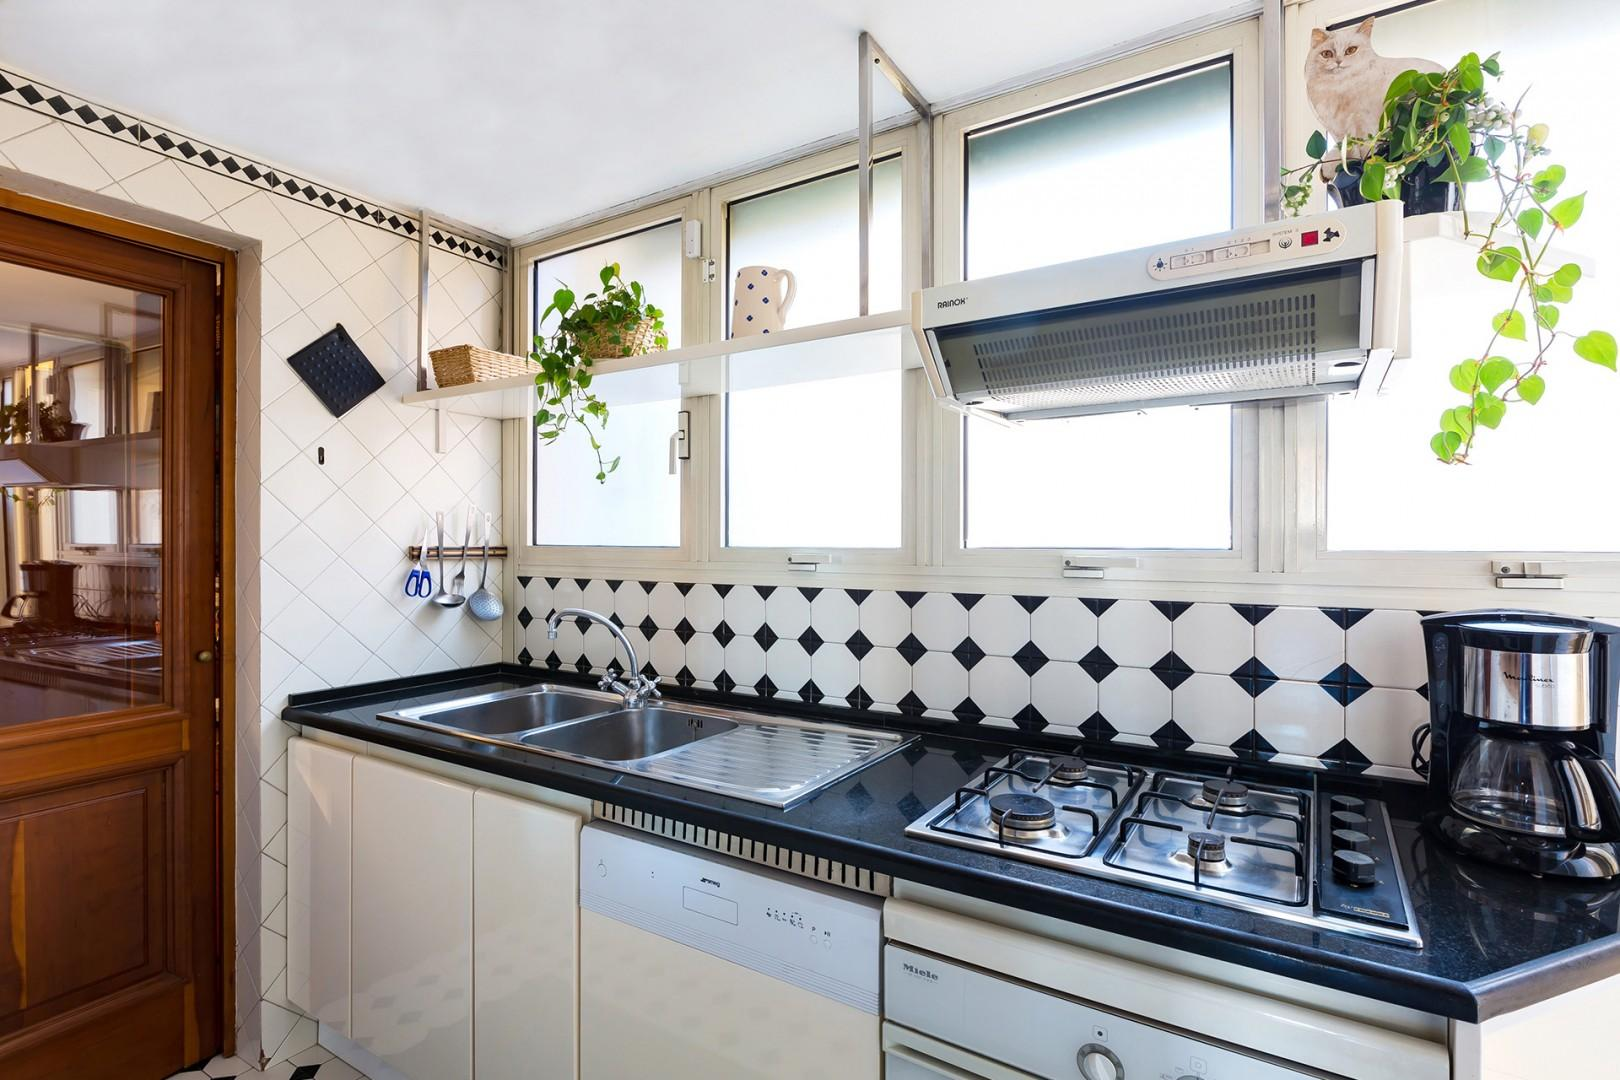 Kitchen is bright and will appointed. It is compact, typical for Italian homes.